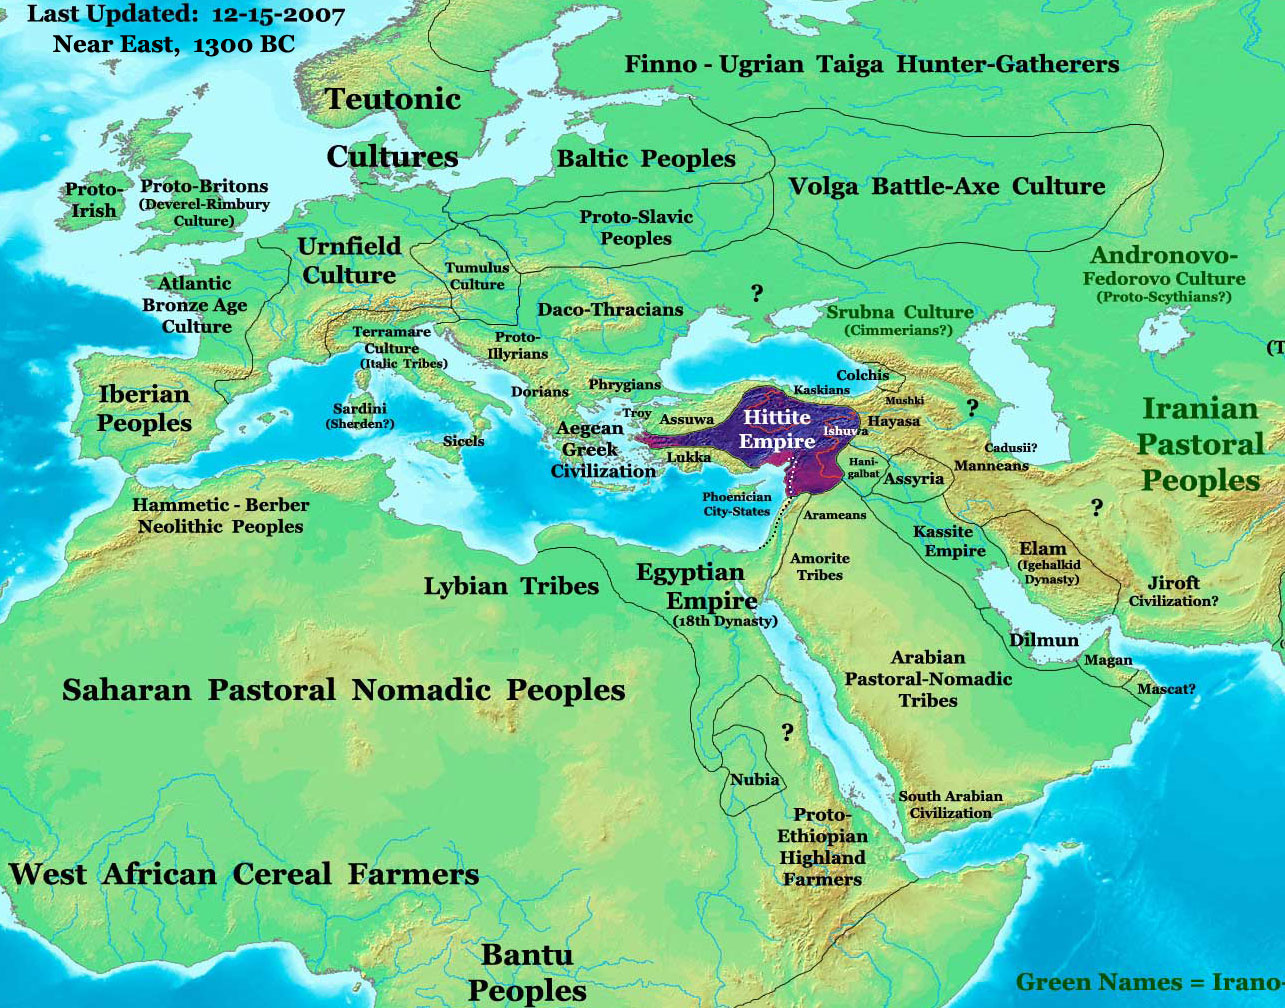 World history maps by thomas lessman hittite empire in 1300 bc ancient history maps gumiabroncs Gallery